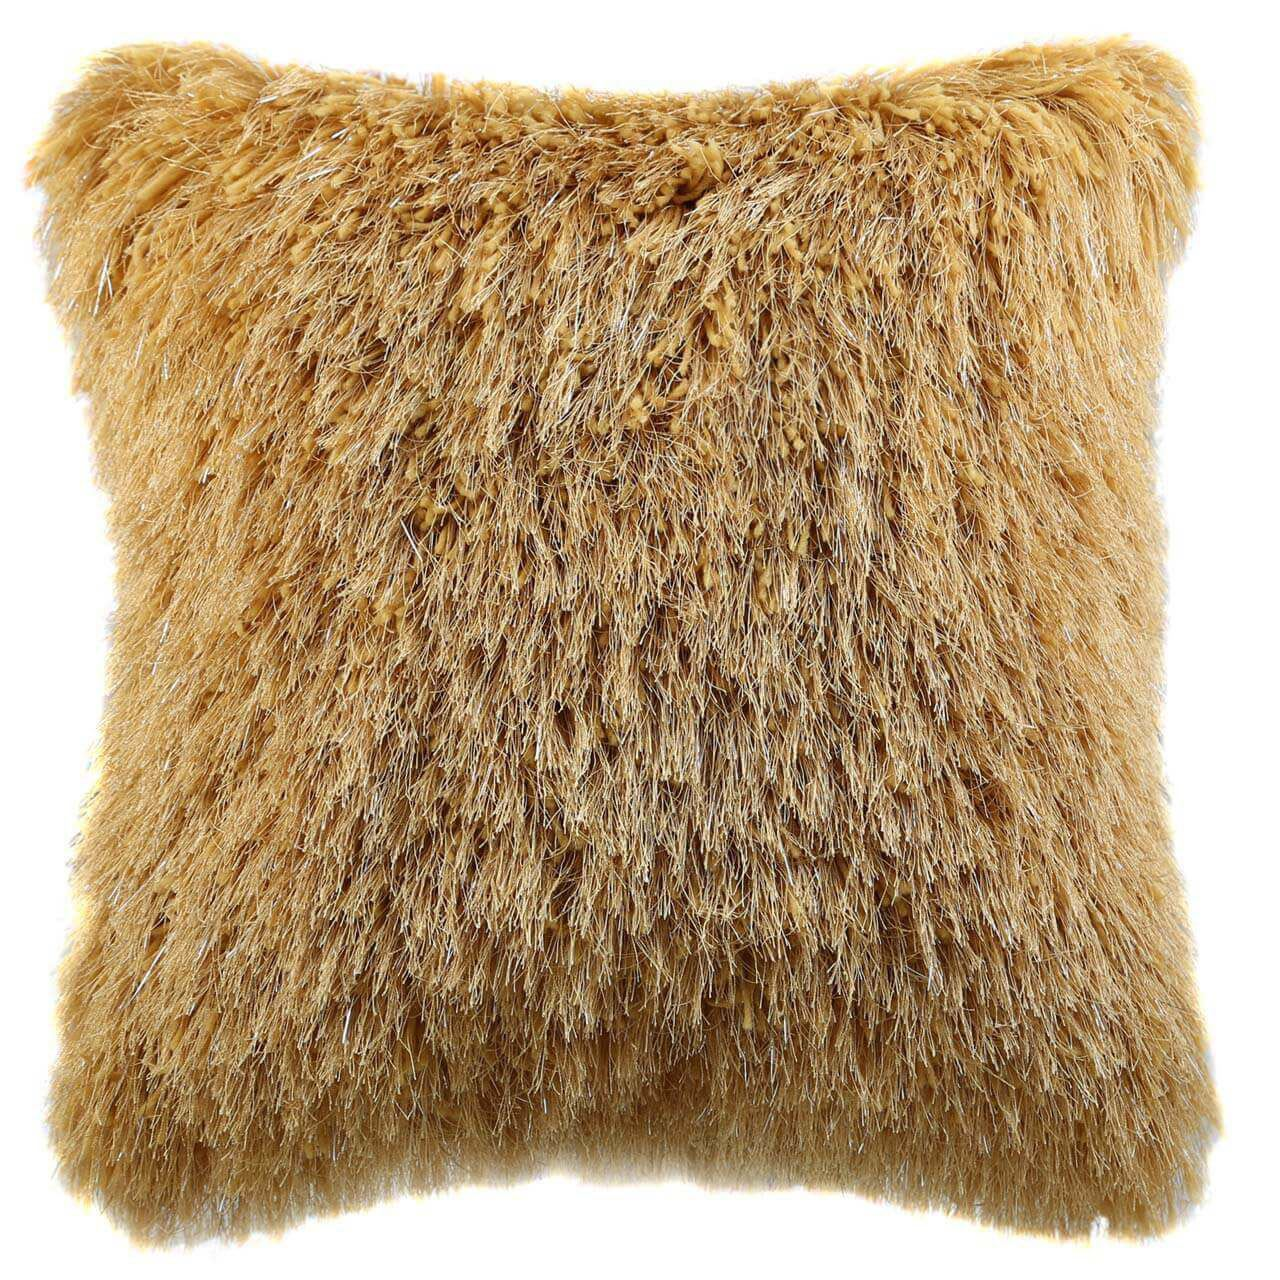 Fluffy Mustard Cushion